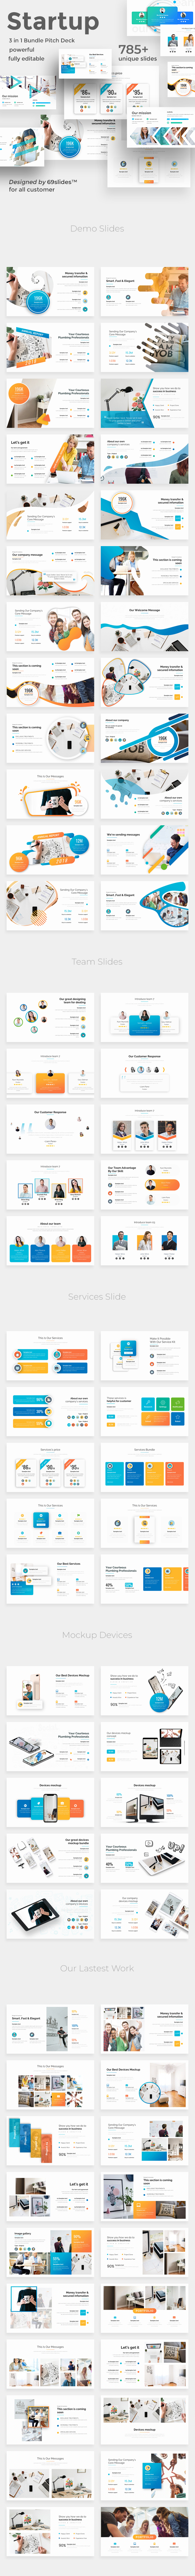 Startup Ideas 3 in 1 Pitch Deck Bundle Powerpoint Template